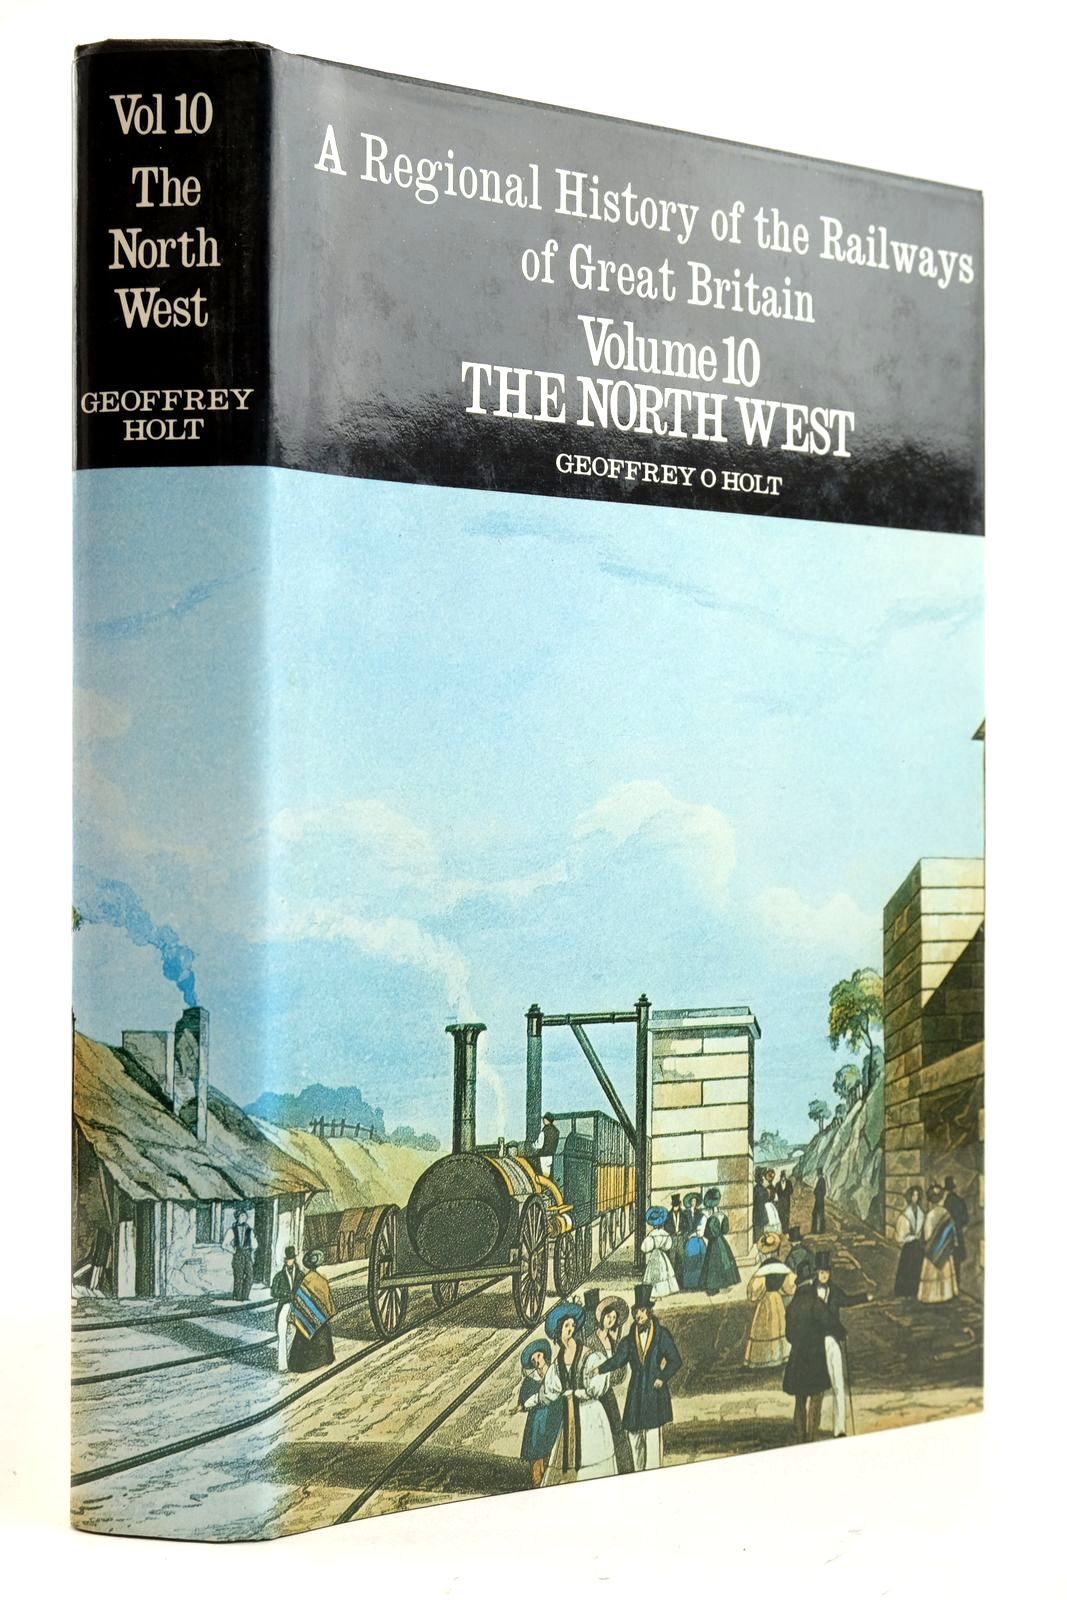 Photo of A REGIONAL HISTORY OF THE RAILWAYS OF GREAT BRITAIN VOLUME X THE NORTH WEST written by Holt, Geoffrey O. published by David & Charles, David St John Thomas (STOCK CODE: 2133044)  for sale by Stella & Rose's Books